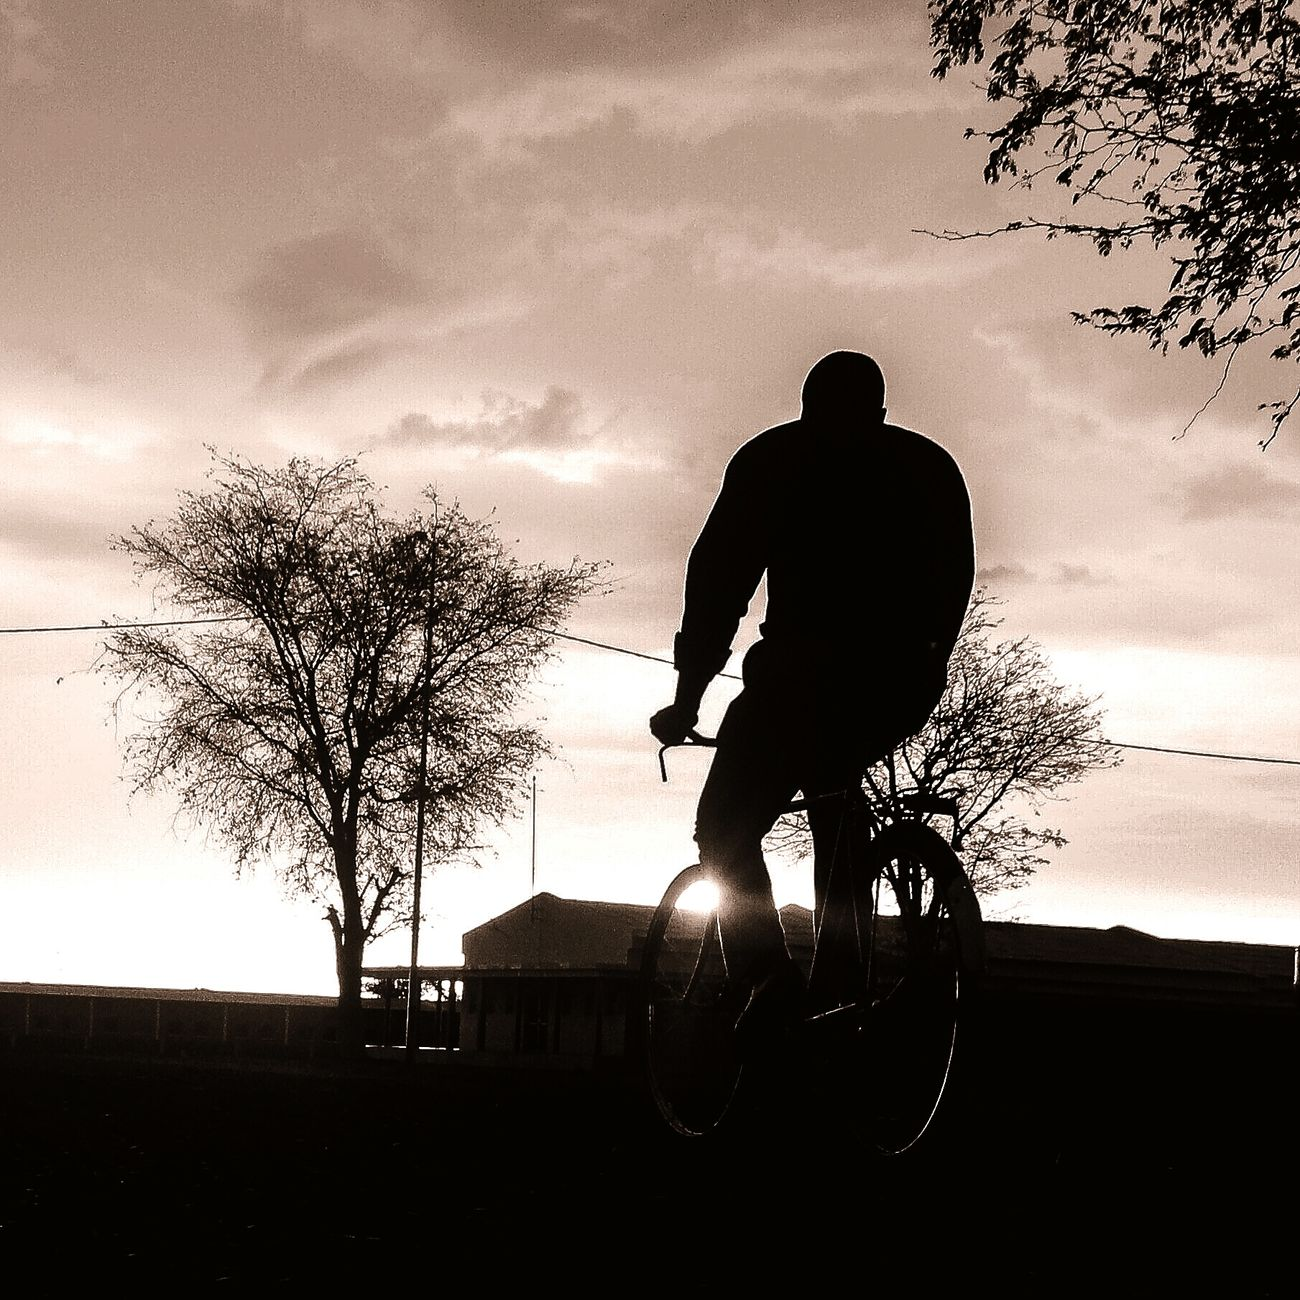 Make It Yourself First Eyeem Photo Cauendephotos Blackandwhite Manochrome Bicycle Village Chiange Sunset